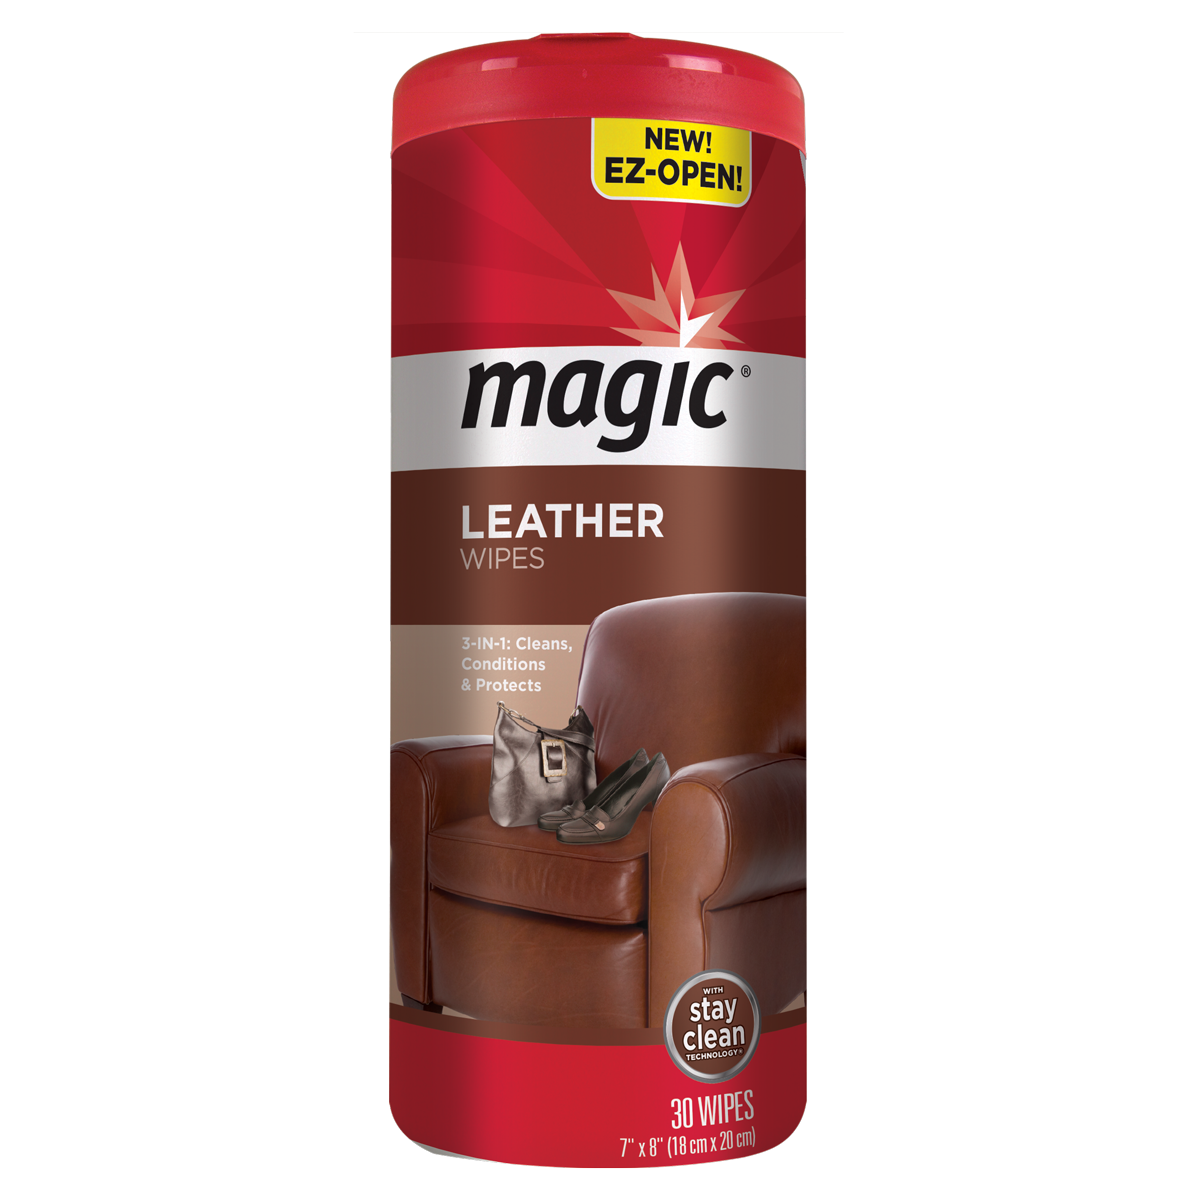 Magic leather wipes